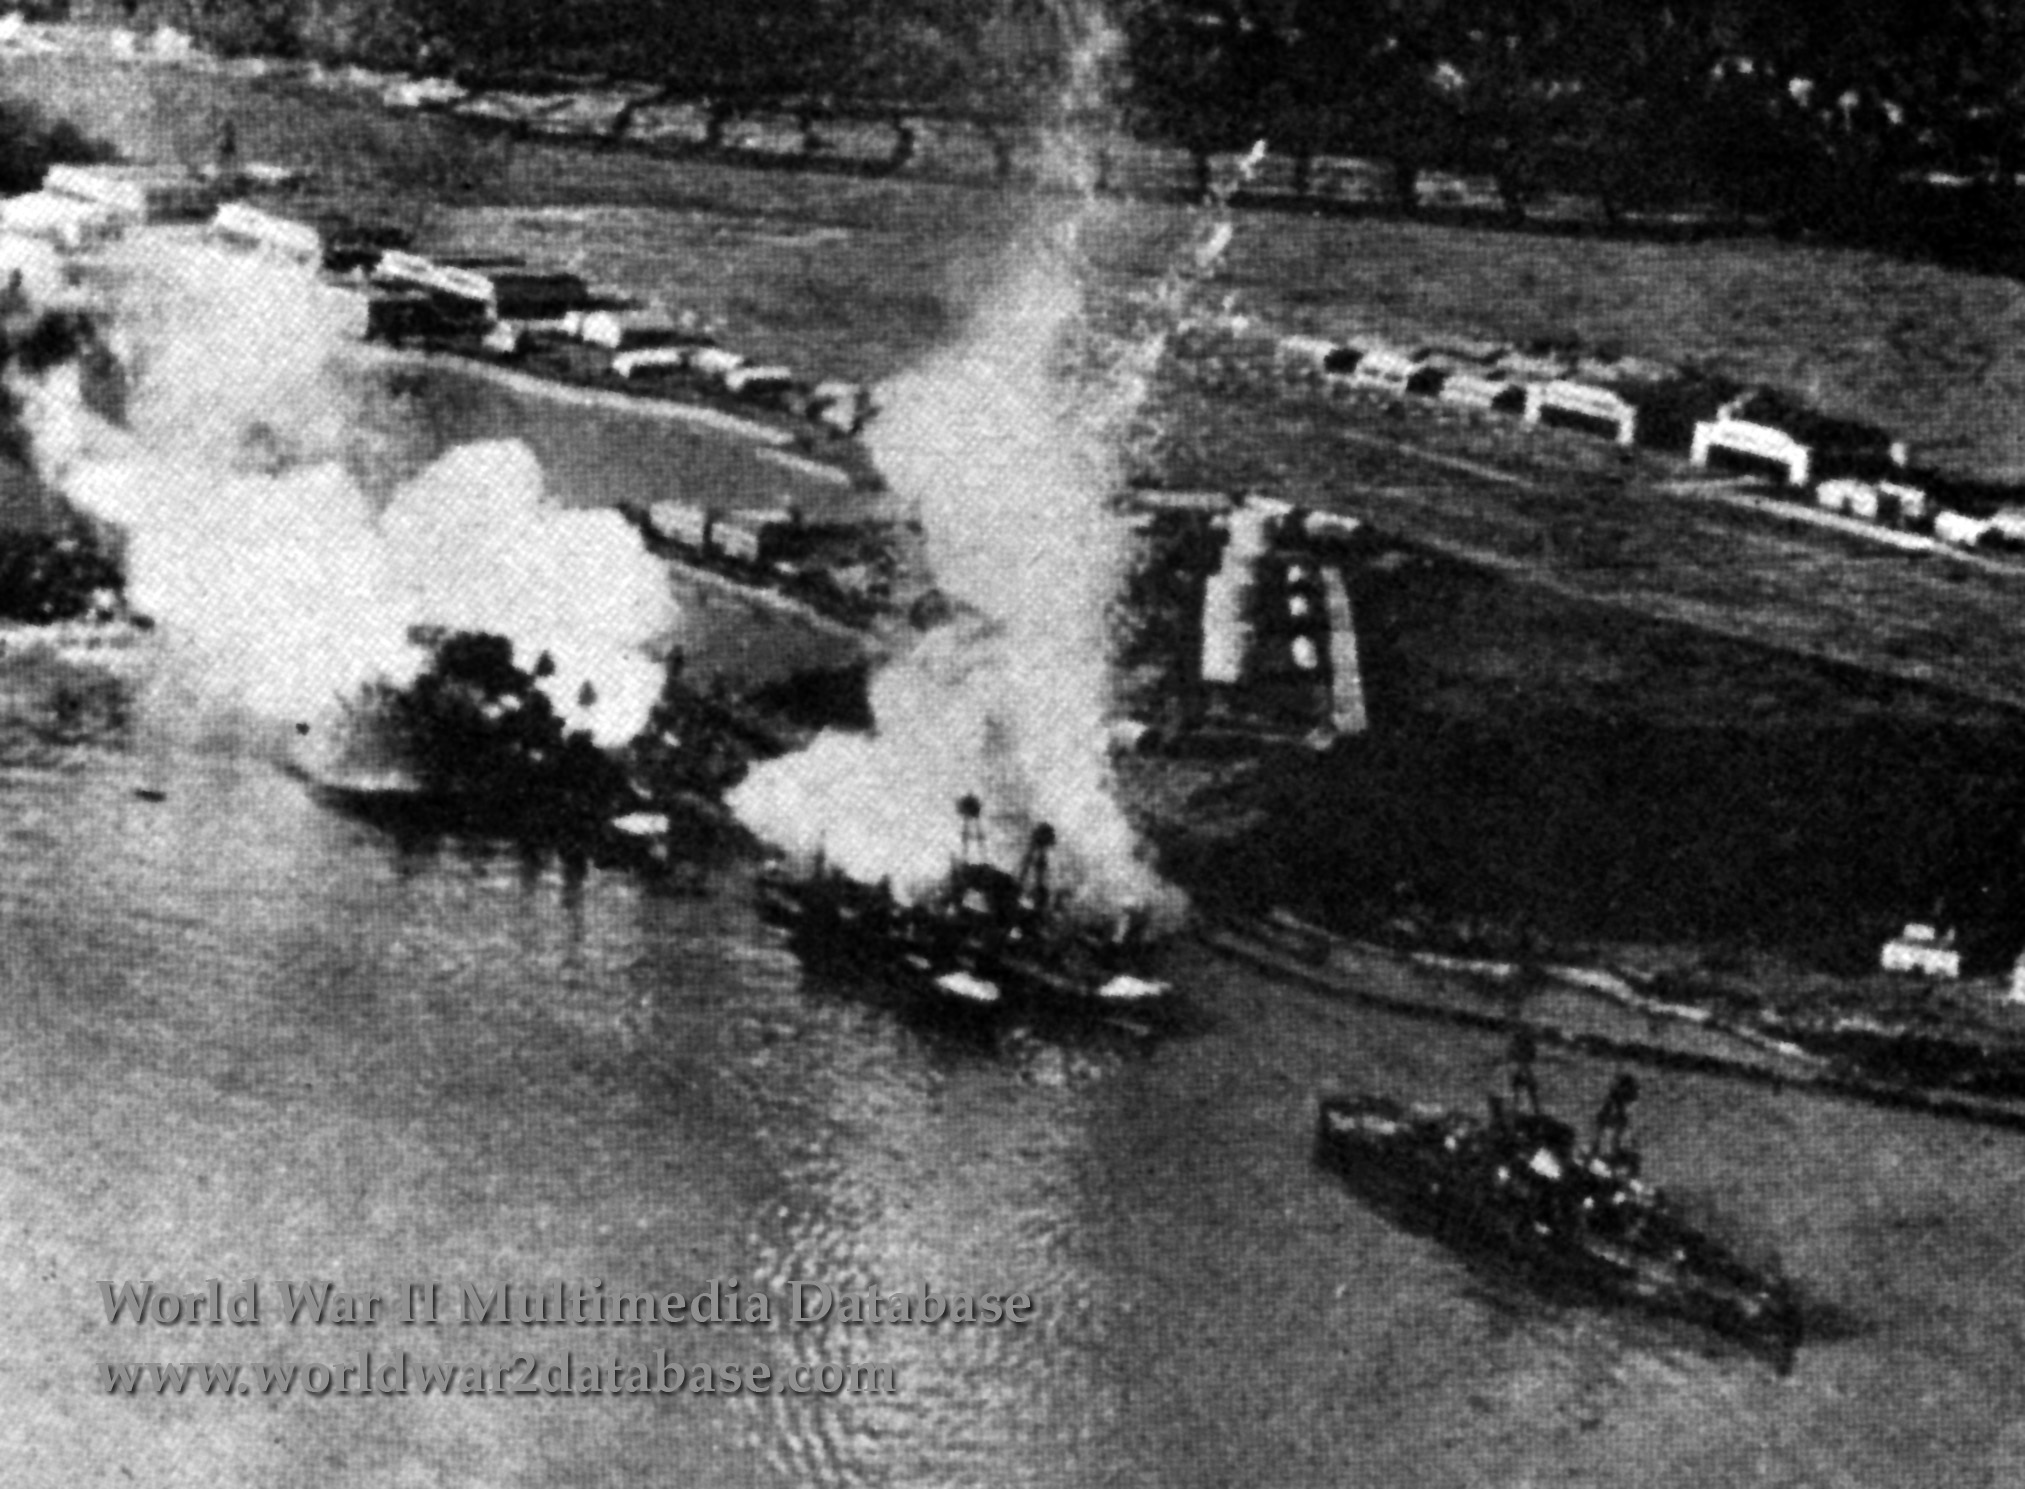 An Original Newsreel About the Bombing of Pearl Harbor ...